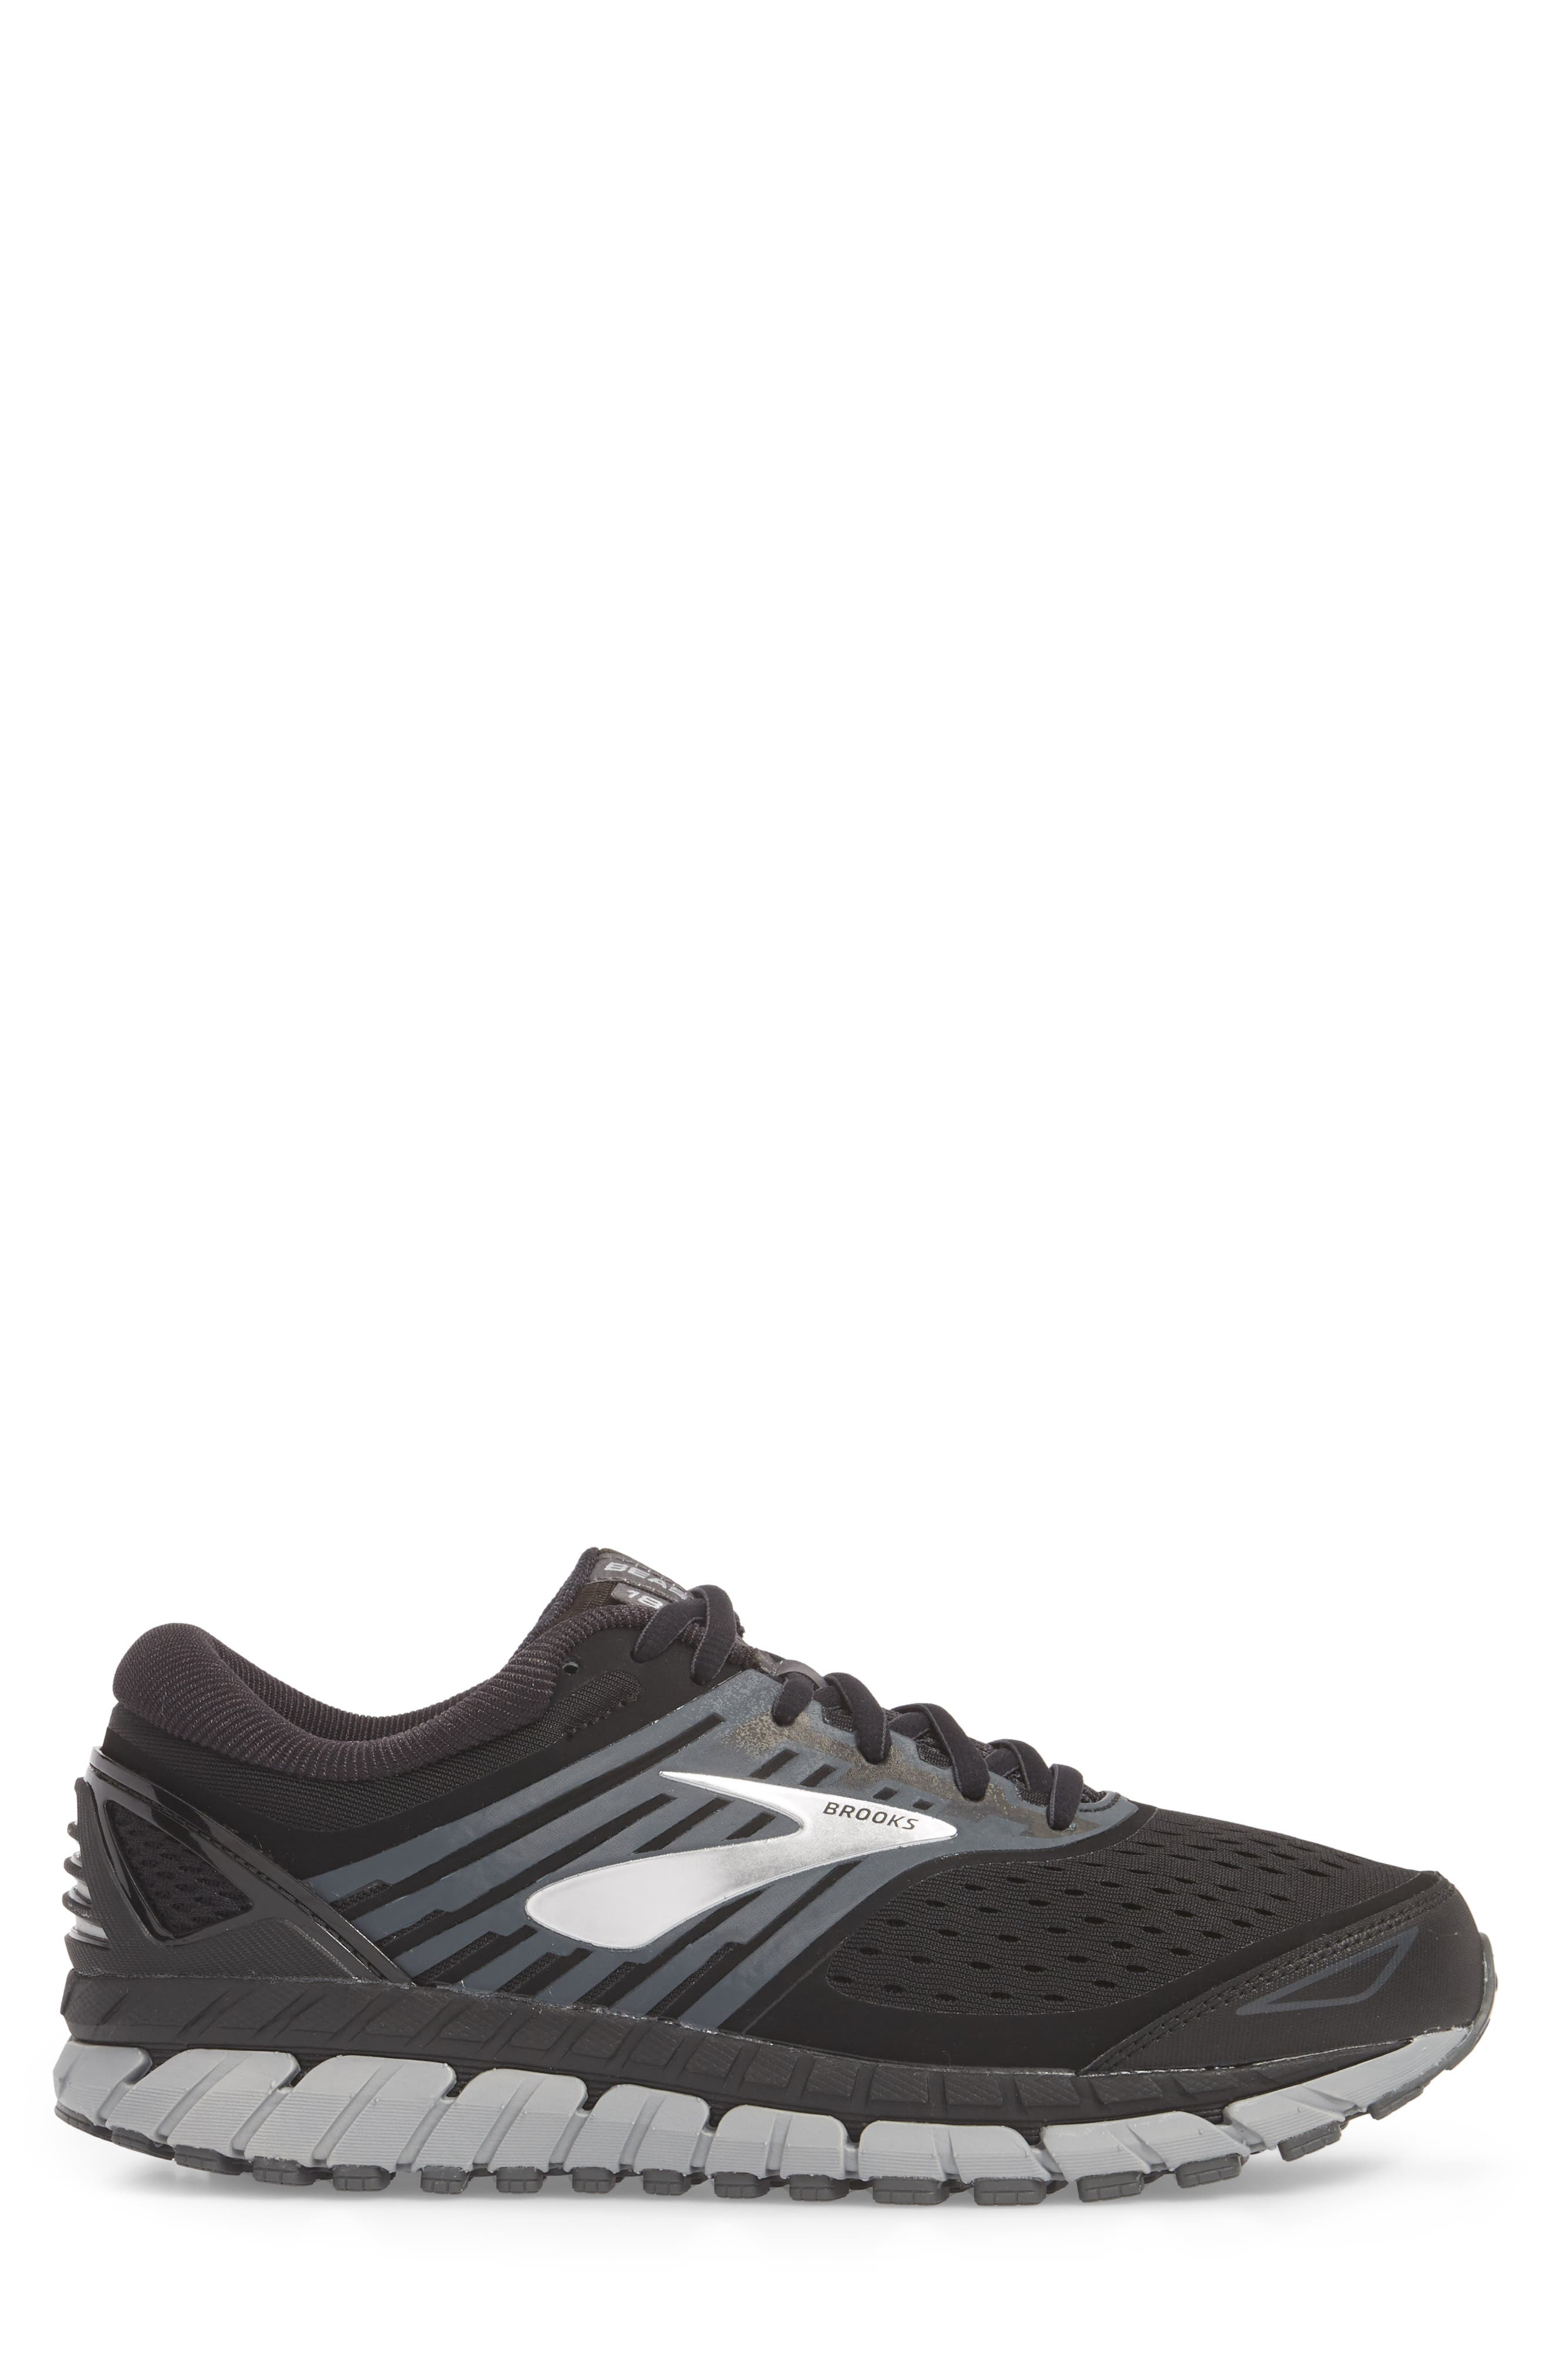 Beast '18 Running Shoe,                             Alternate thumbnail 3, color,                             BLACK/ GREY/ SILVER